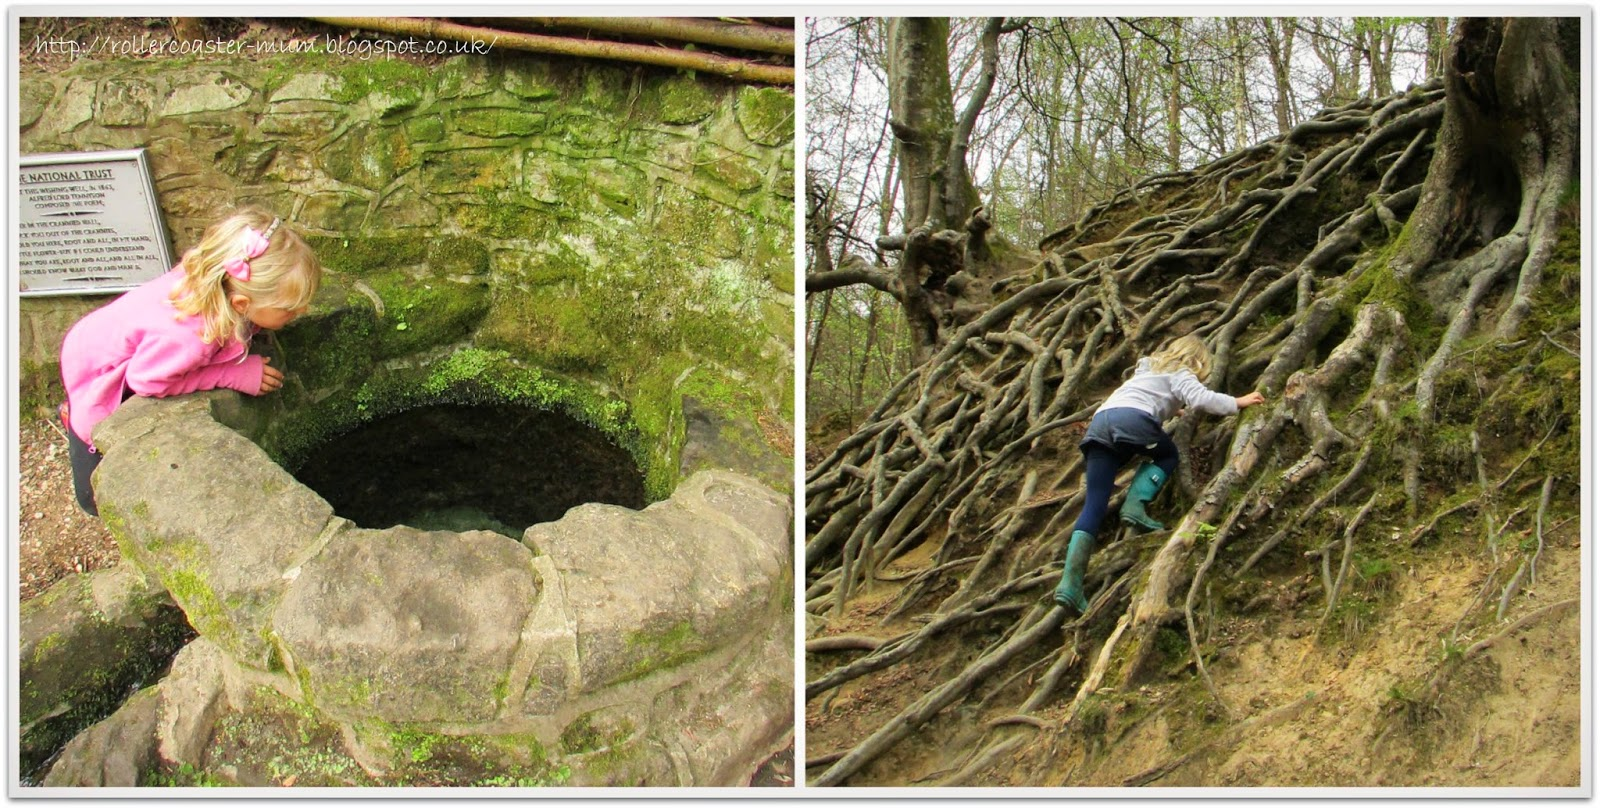 Wishing Well and climbing roots, Waggoner's Wells, National Trust